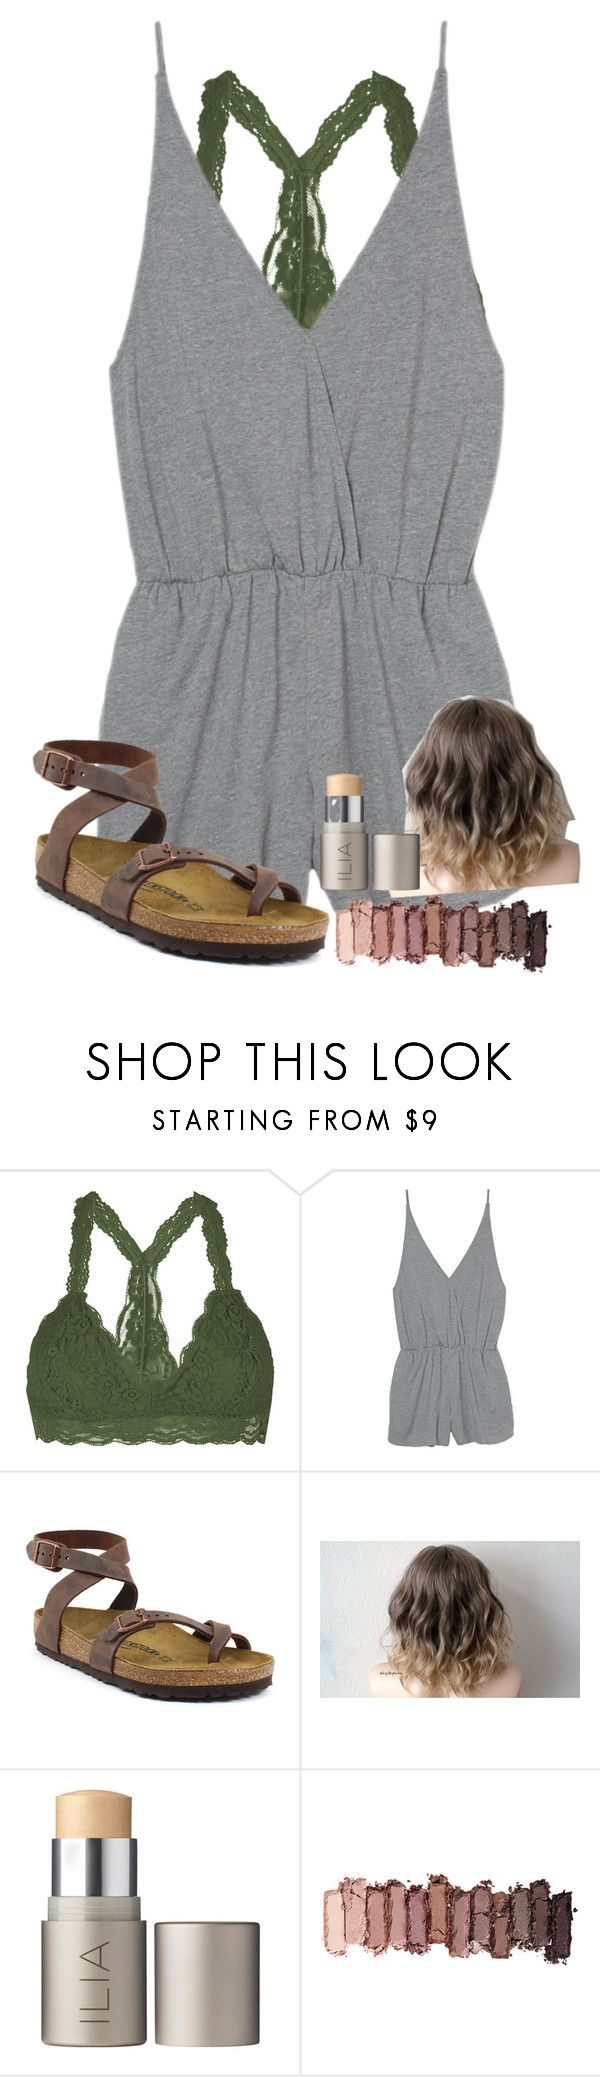 """Sorry i've been gone so long y'all "" by abby14310 ❤ liked on Polyvore featuring Youmita, Birkenstock, Ilia and Urban Decay"